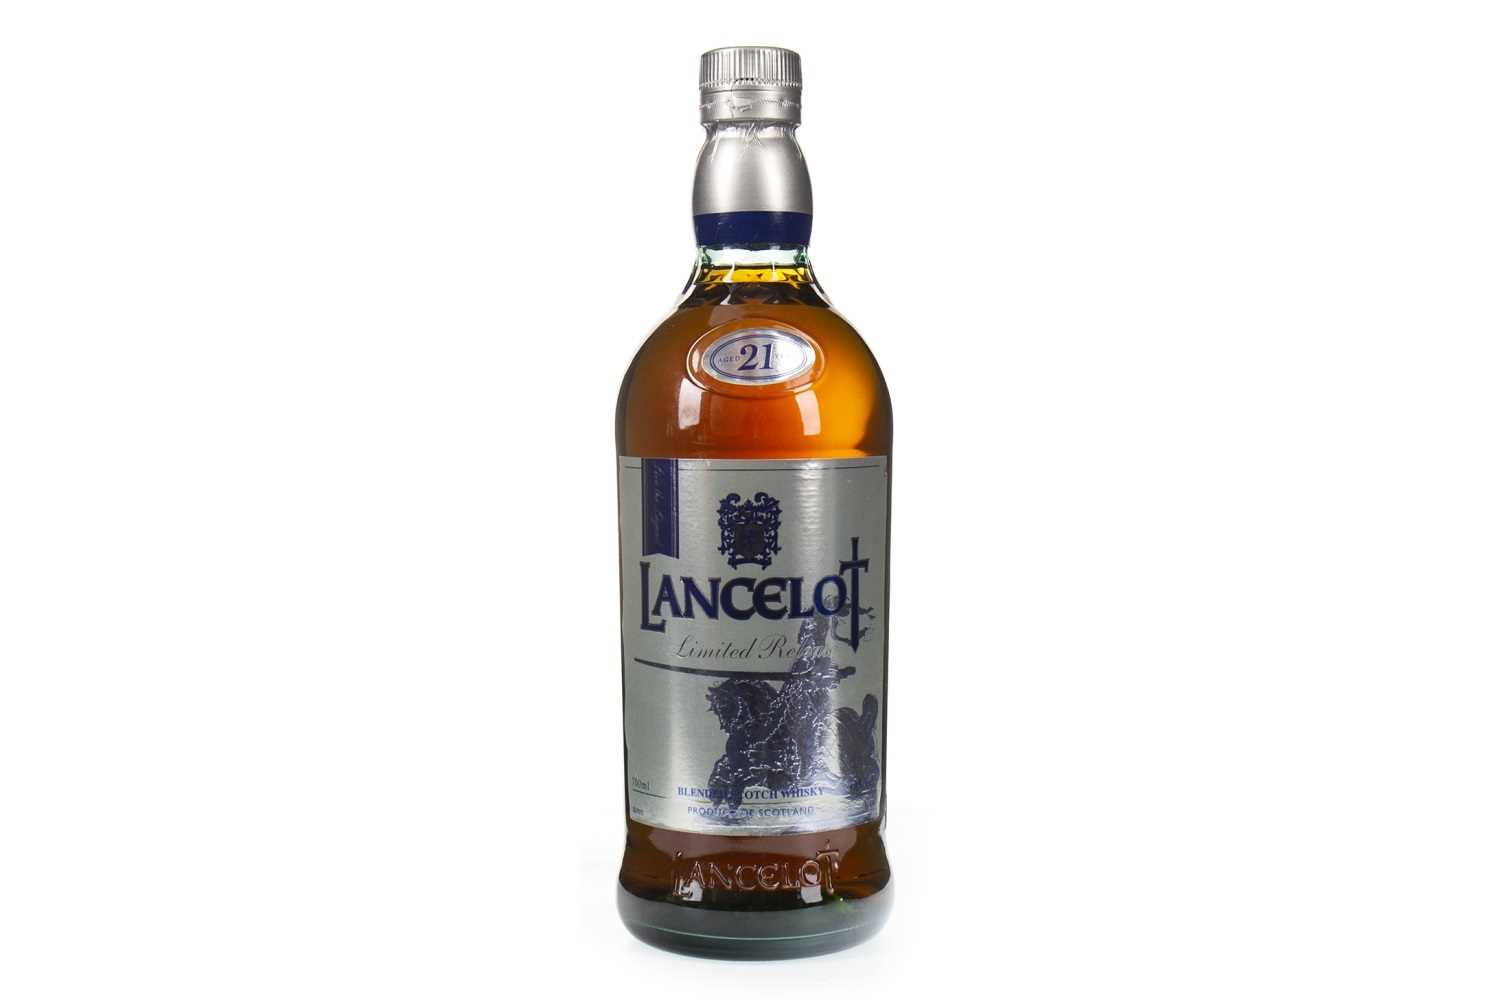 Lot 406-LANCELOT AGED 21 YEARS